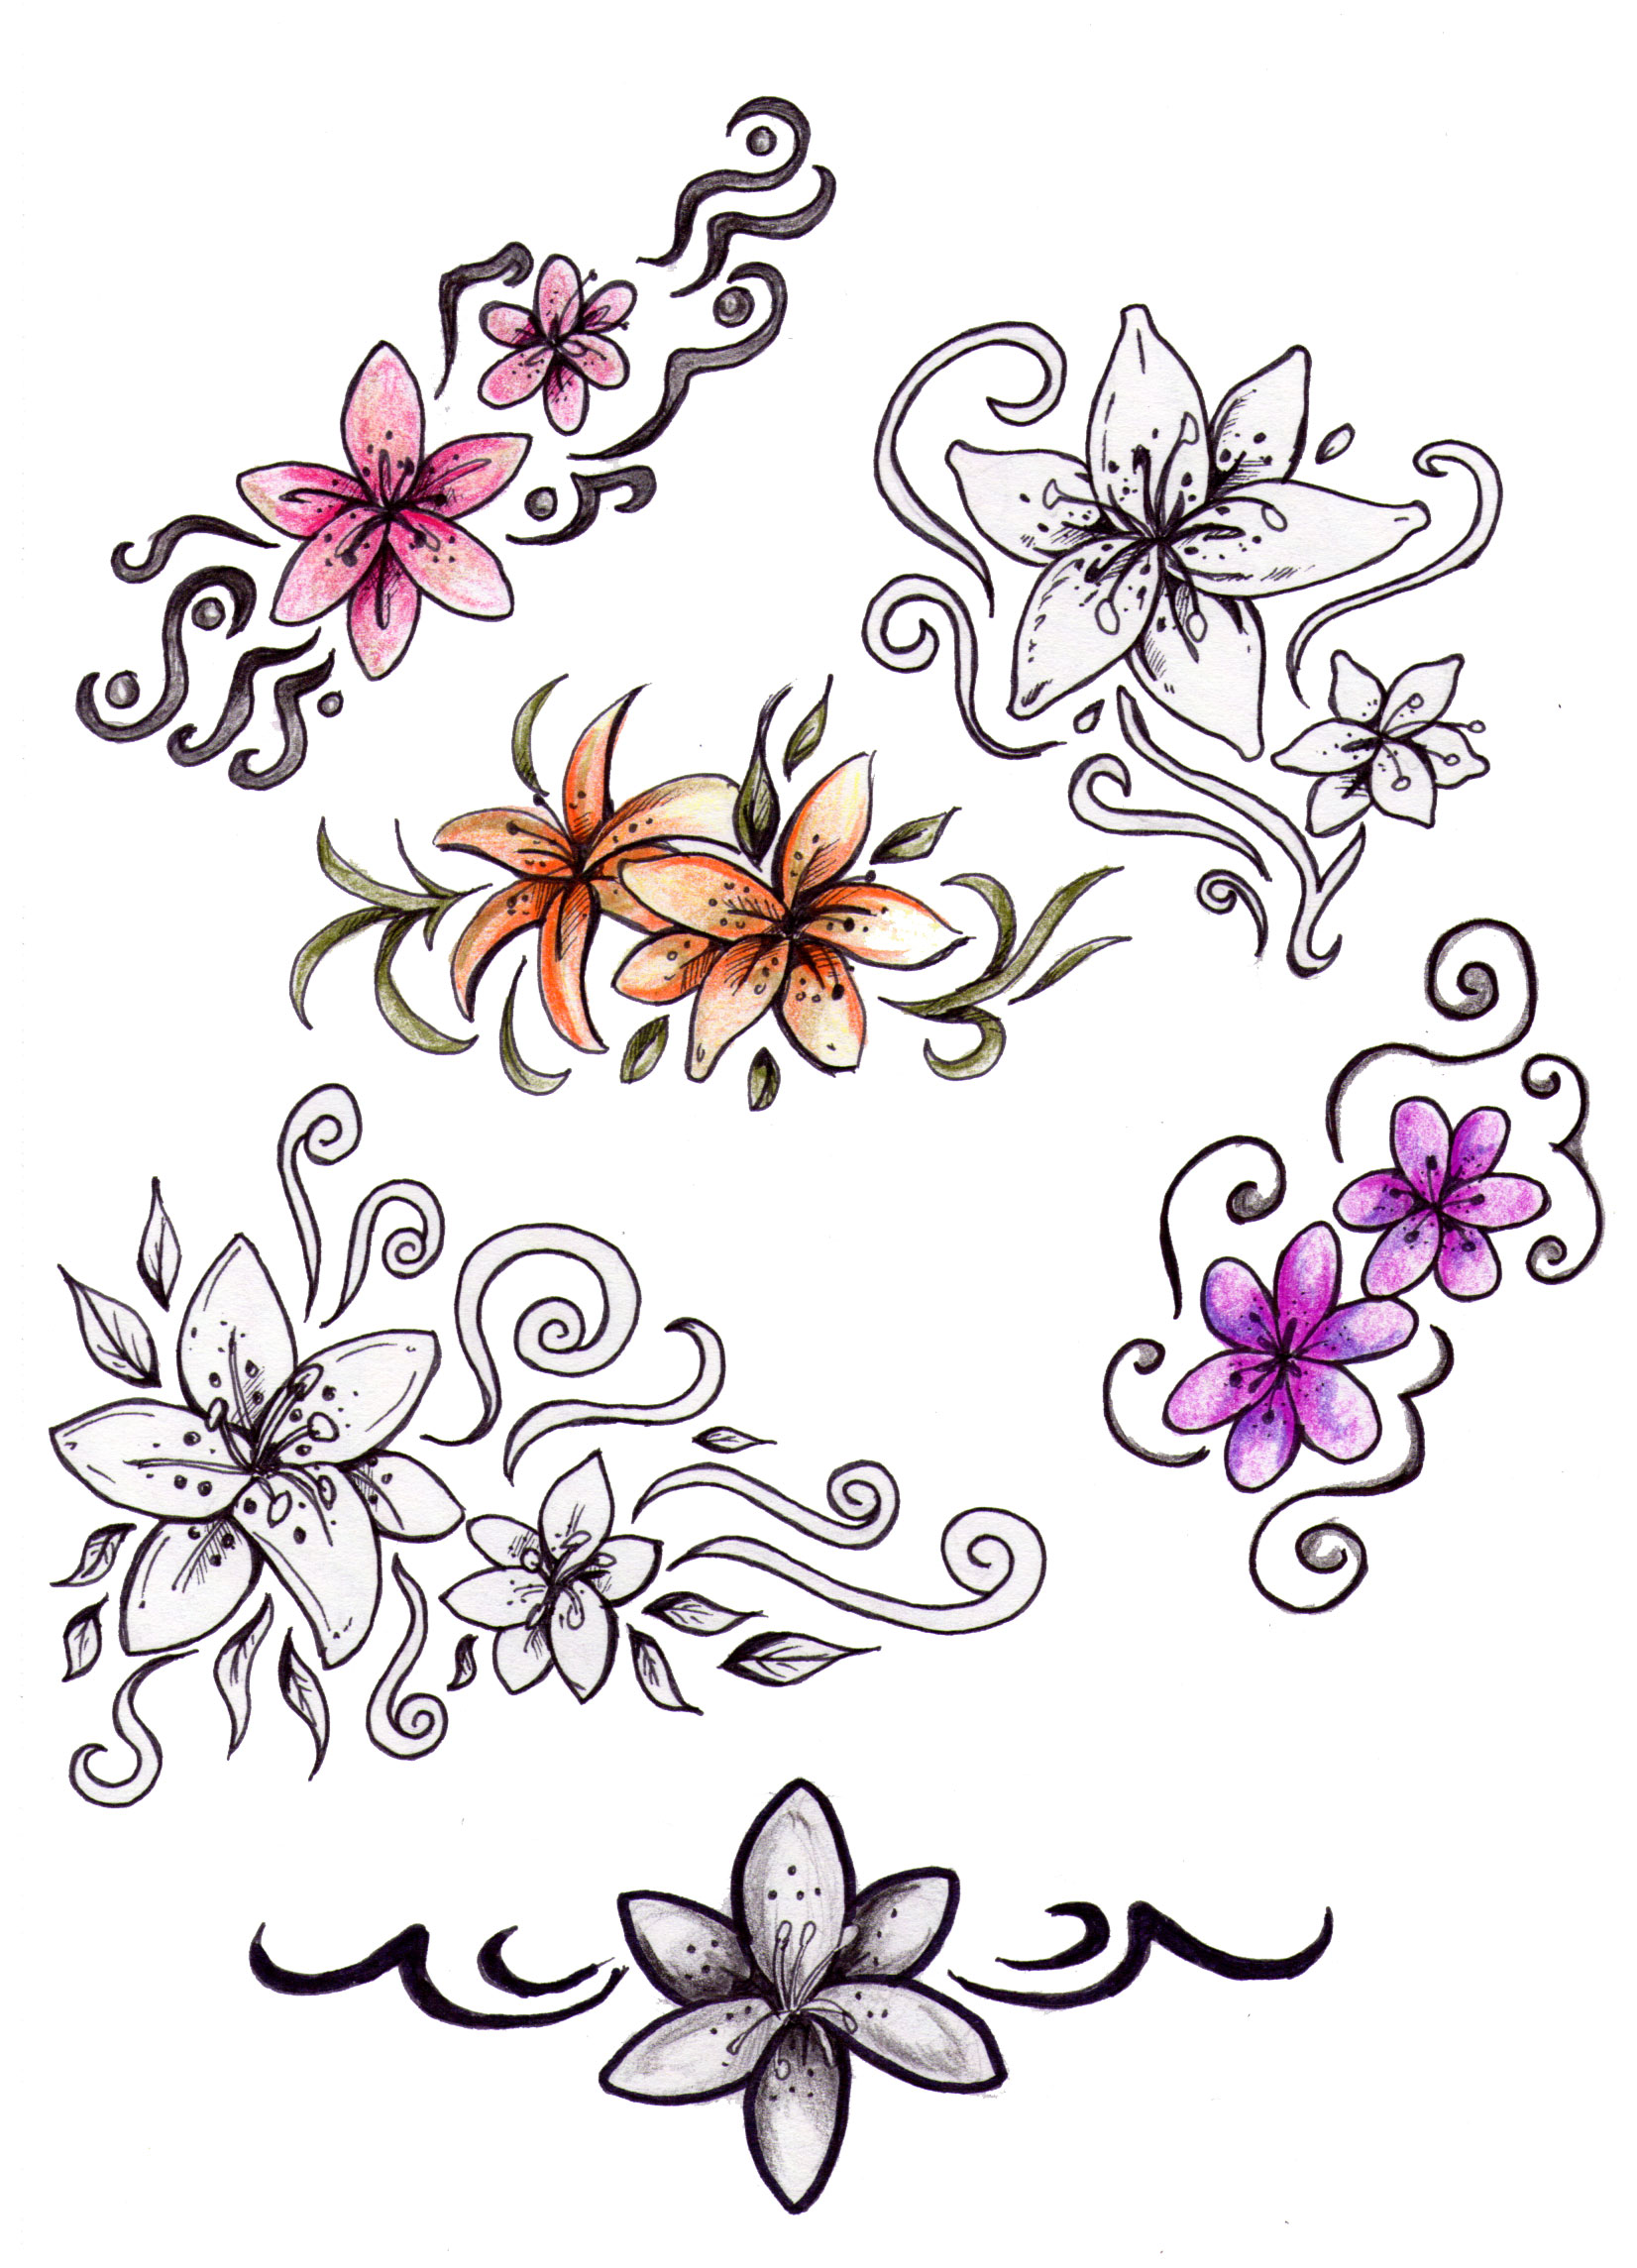 Marlen guide lily flower tattoo designs 2009 cool drawing flower tattoo designs izmirmasajfo